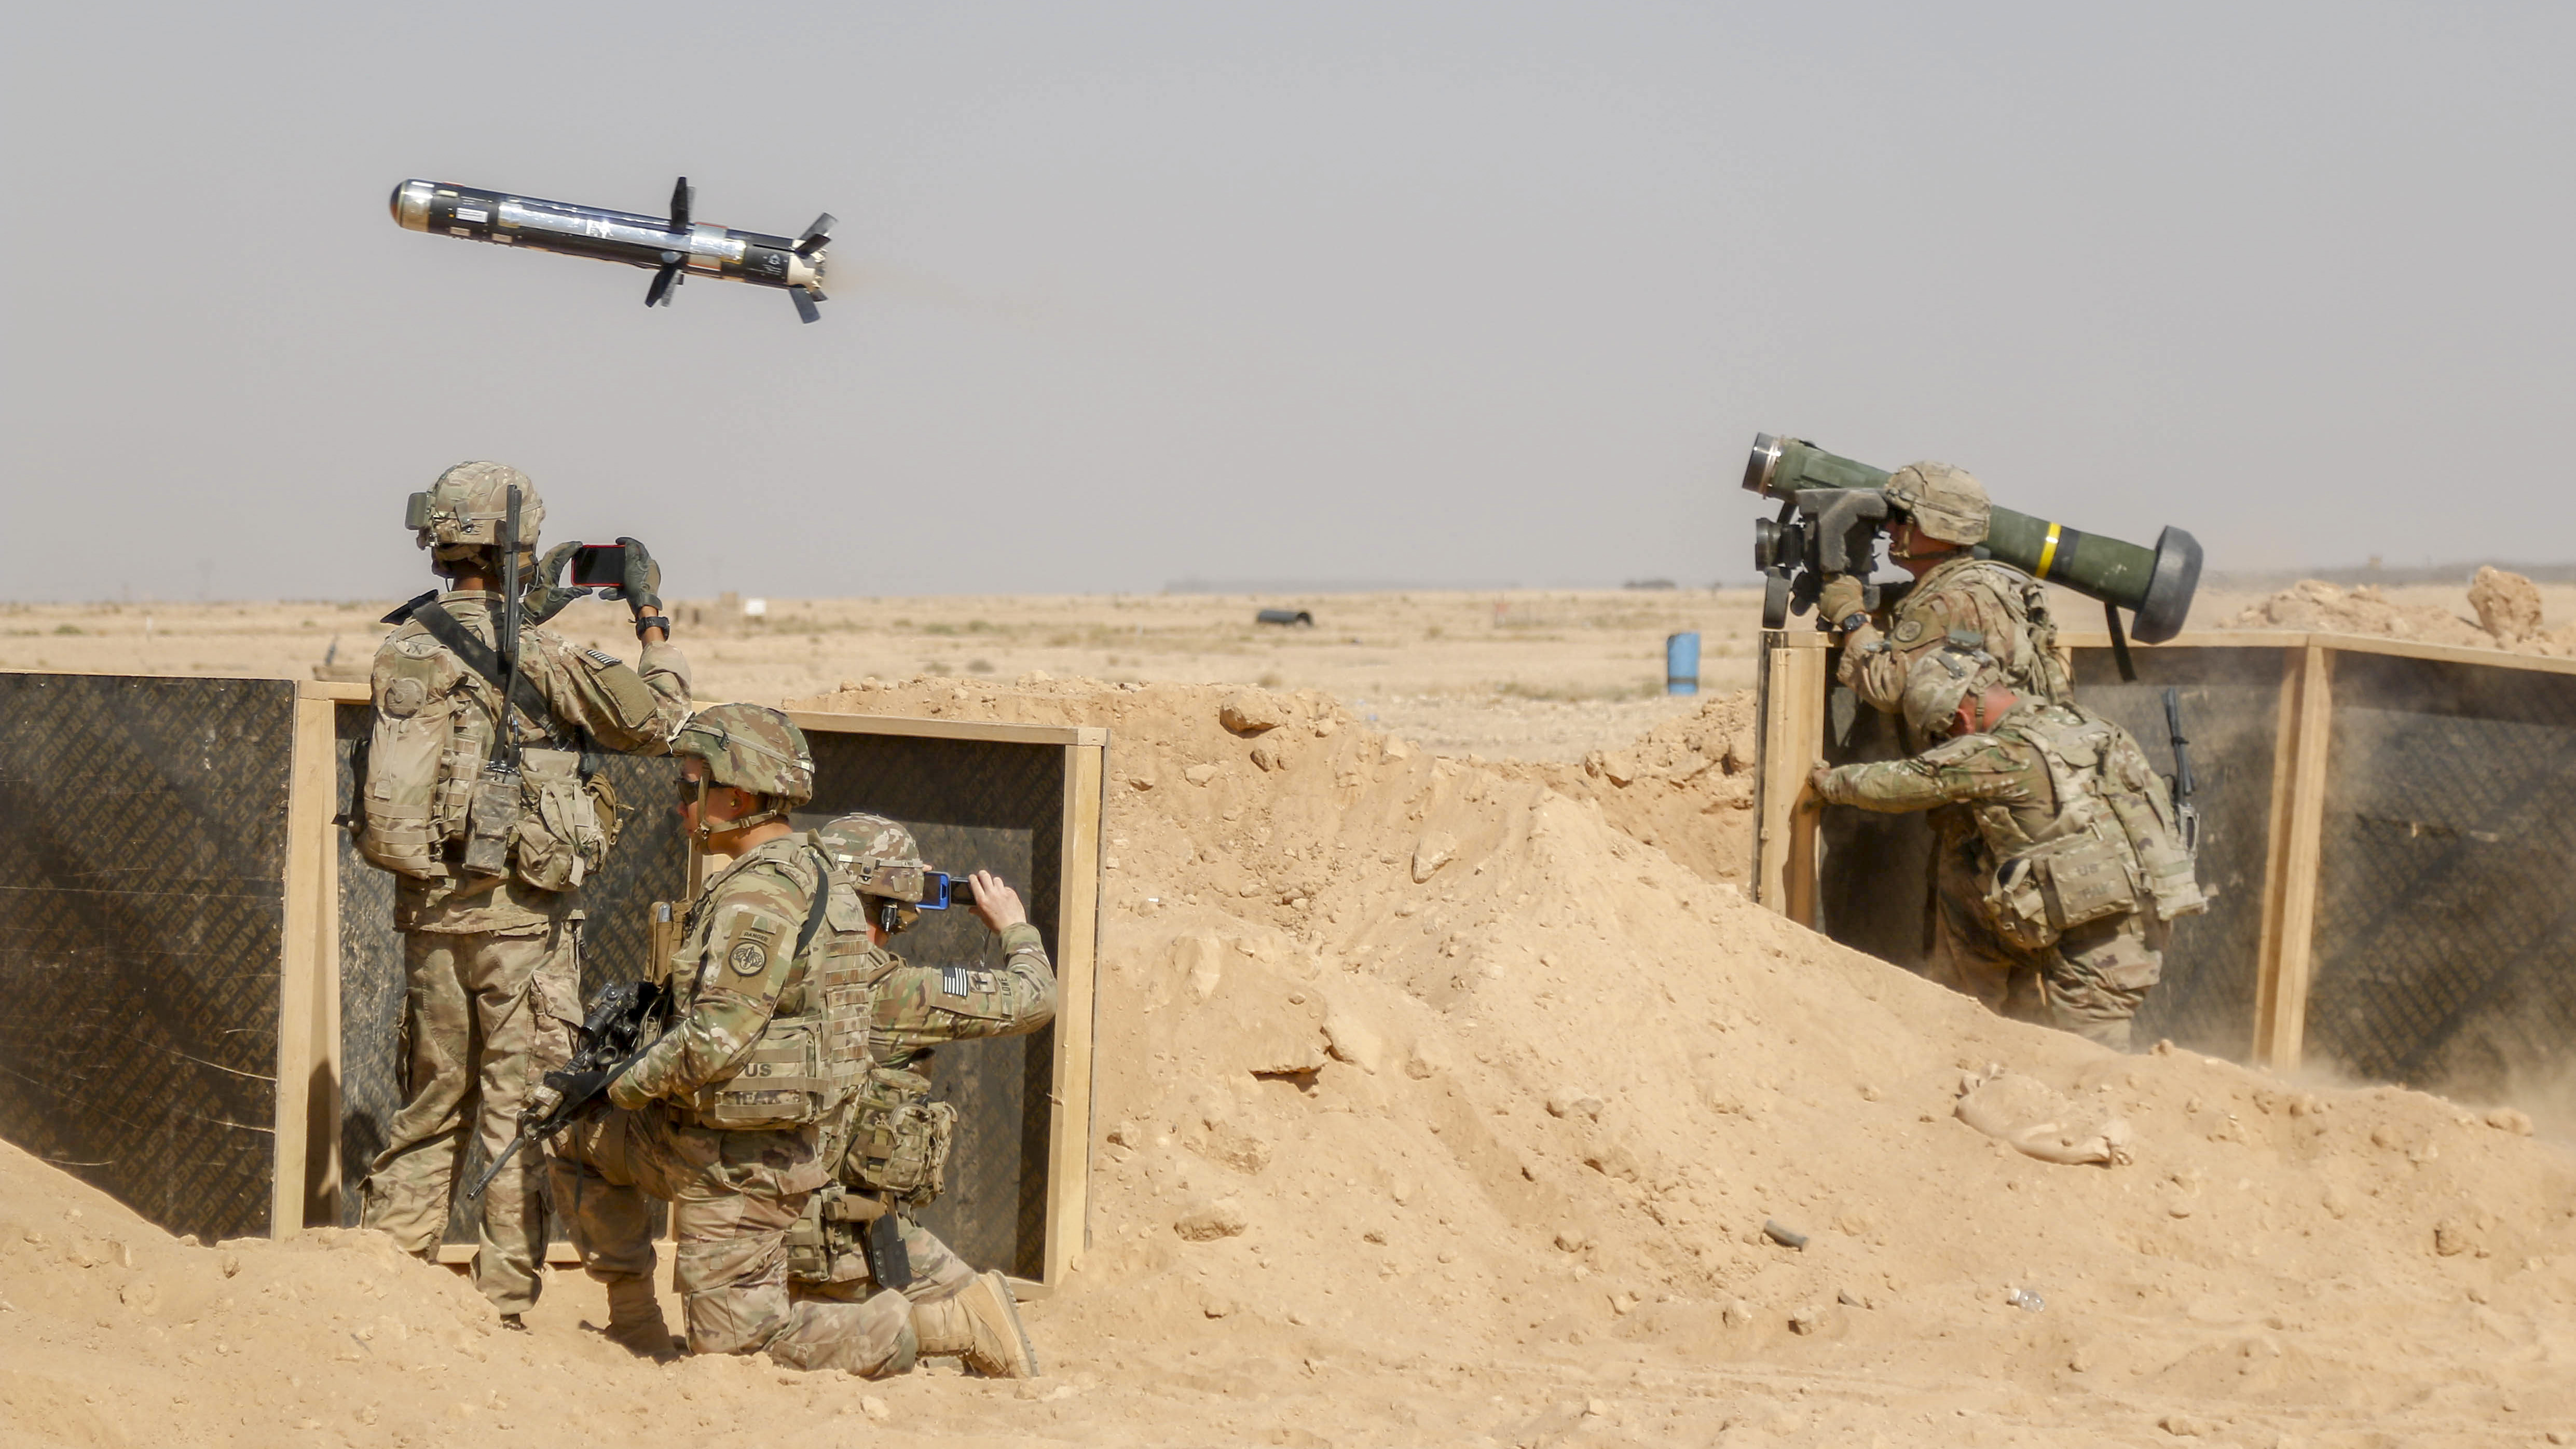 A U.S. Soldier assigned to the 3rd Cavalry Regiment and deployed in support of Combined Joint Task Force – Operation Inherent Resolve (CJTF-OIR) fires a Javelin anti-tank missile near Al Asad Air Base (AAAB), Iraq, Sept. 26, 2018. The Javelin was a part of a live-fire, react to contact training exercise involving M2A1 and M240B machine guns. AAAB is a CJTF-OIR enhanced partner capacity location dedicated to training partner forces and enhancing their effectiveness. (1st Lt. Leland White/Army National Guard)